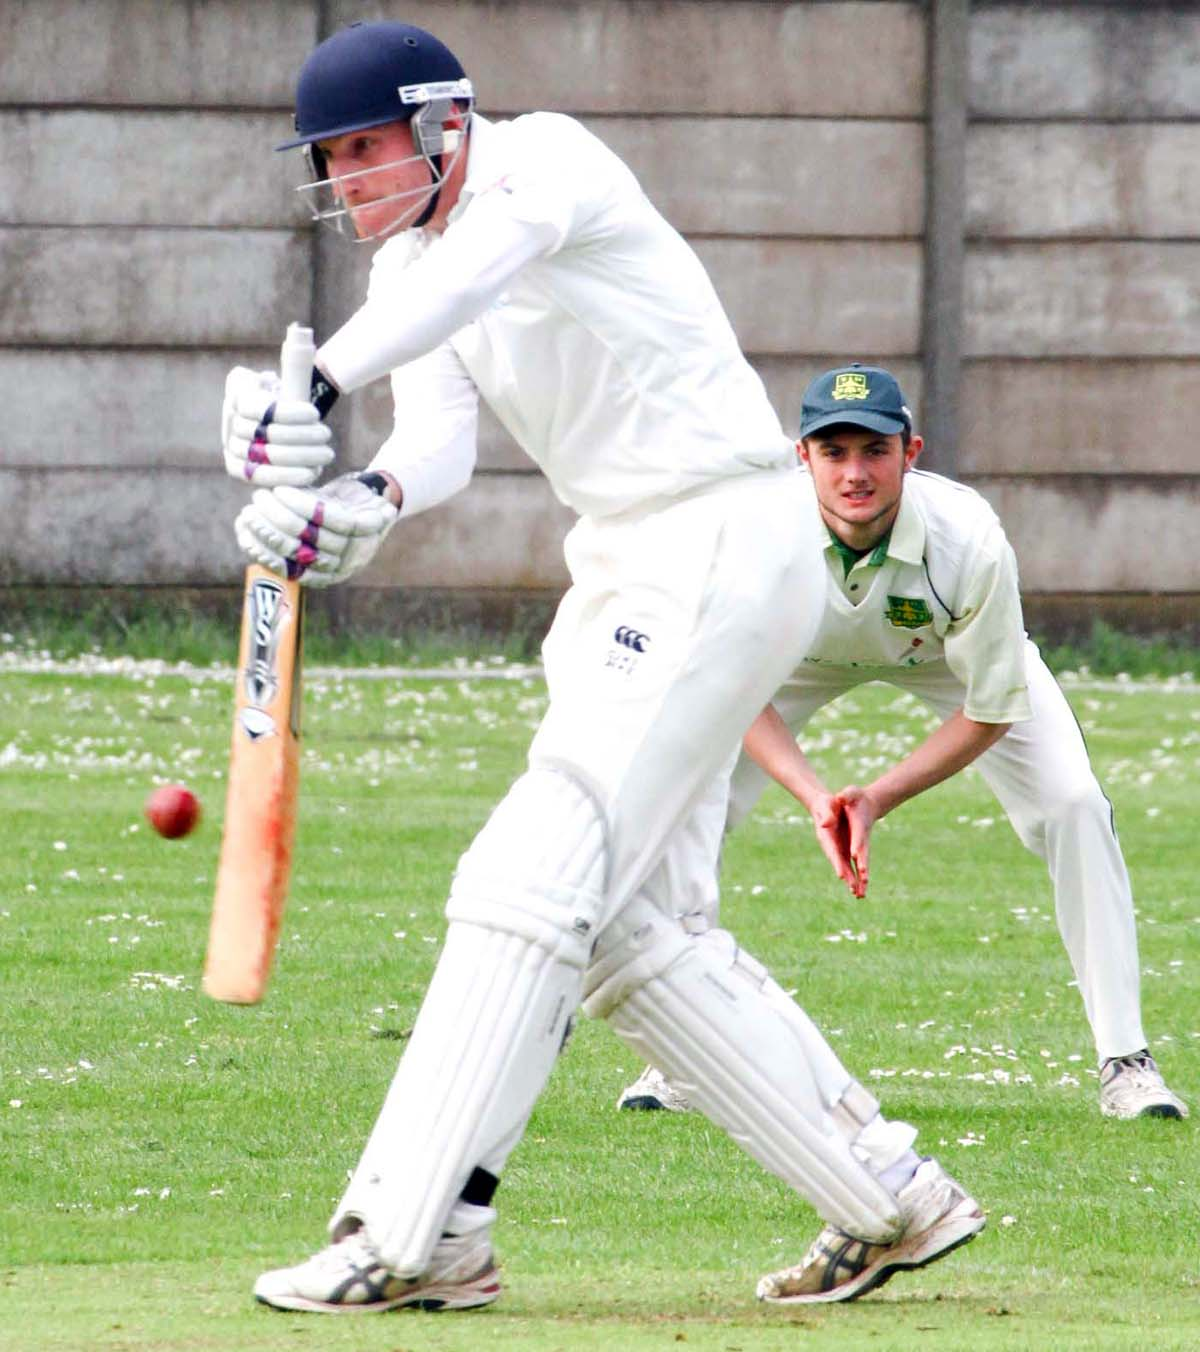 Winnington Park opener James Hendry keeps his eye on the ball during Saturday's draw at home to Lymm. Picture: MATT SAYLE